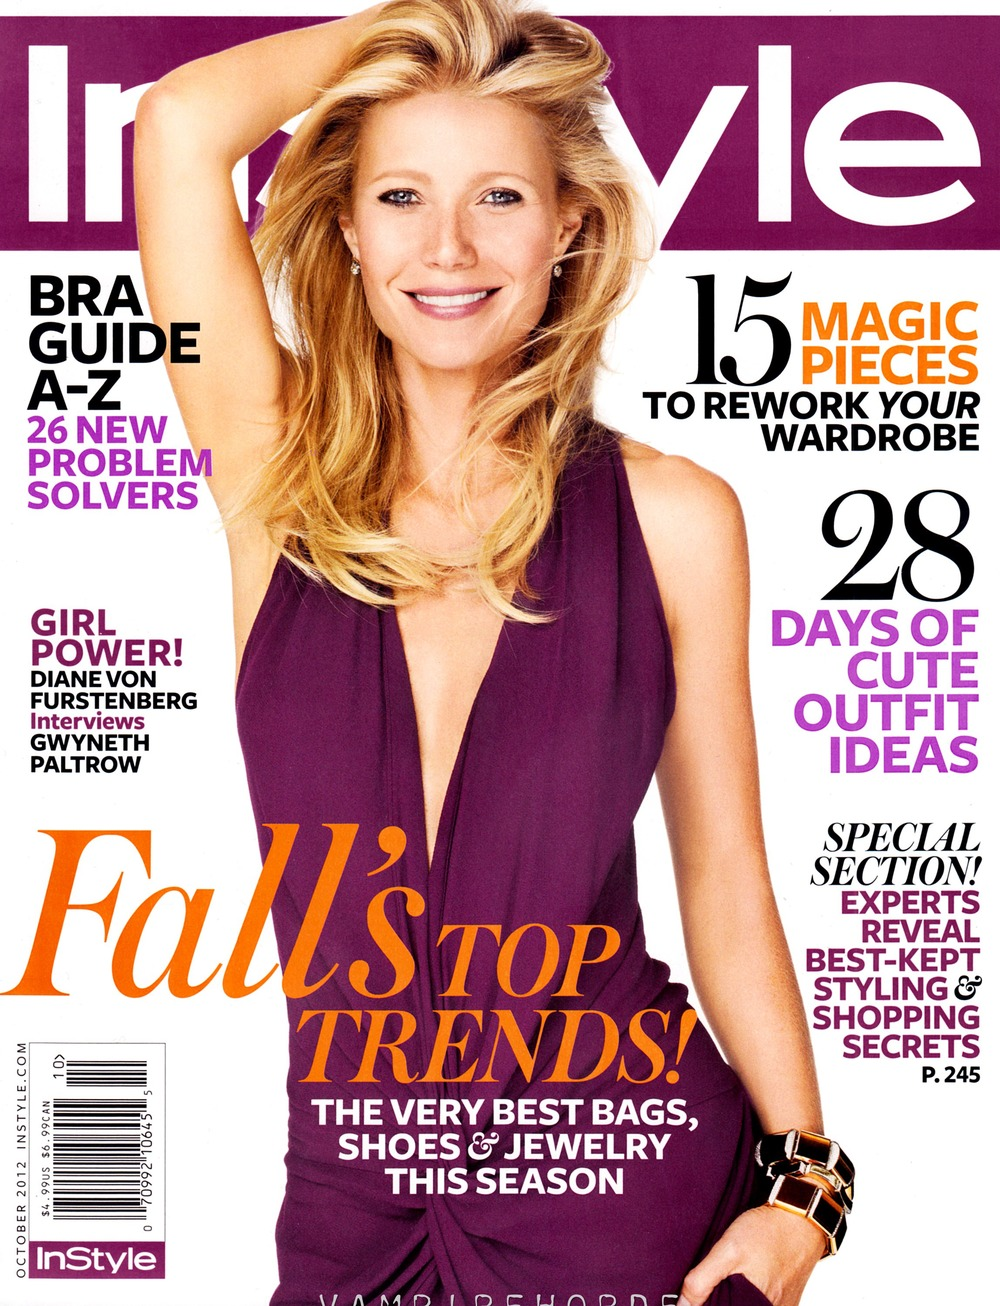 instyle-october-2012.jpg